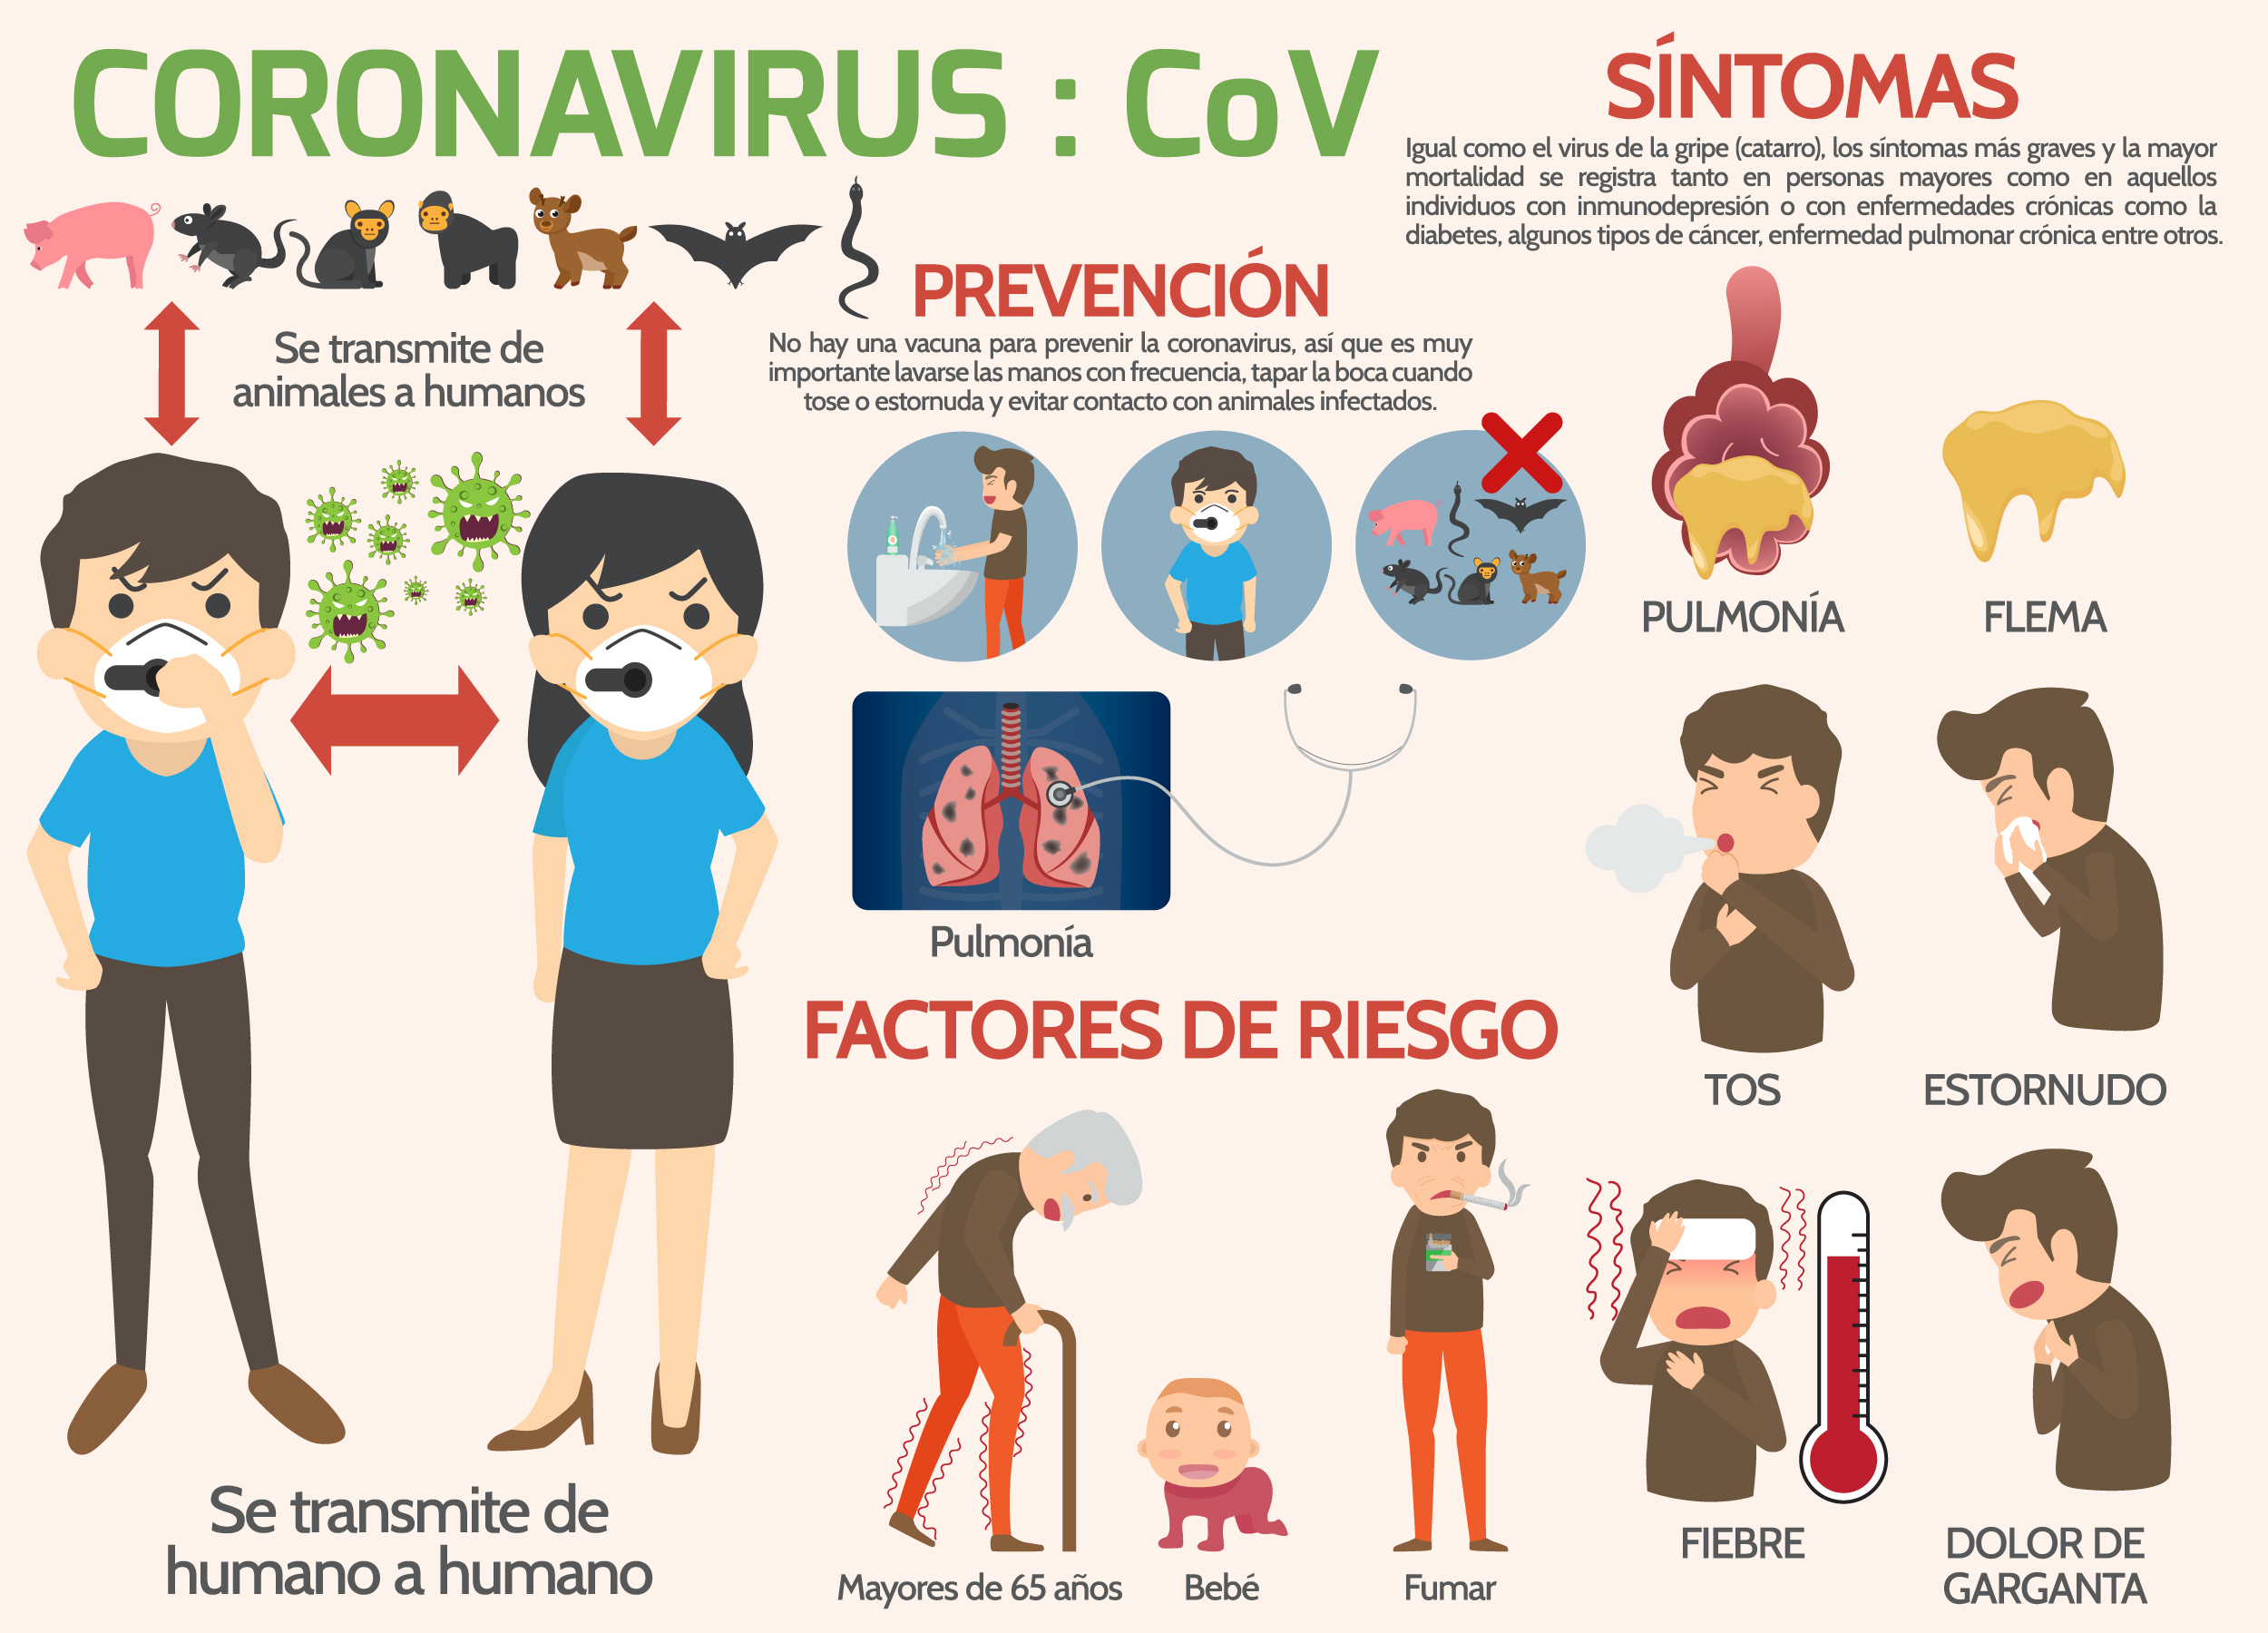 How To Talk About Coronavirus in Spanish